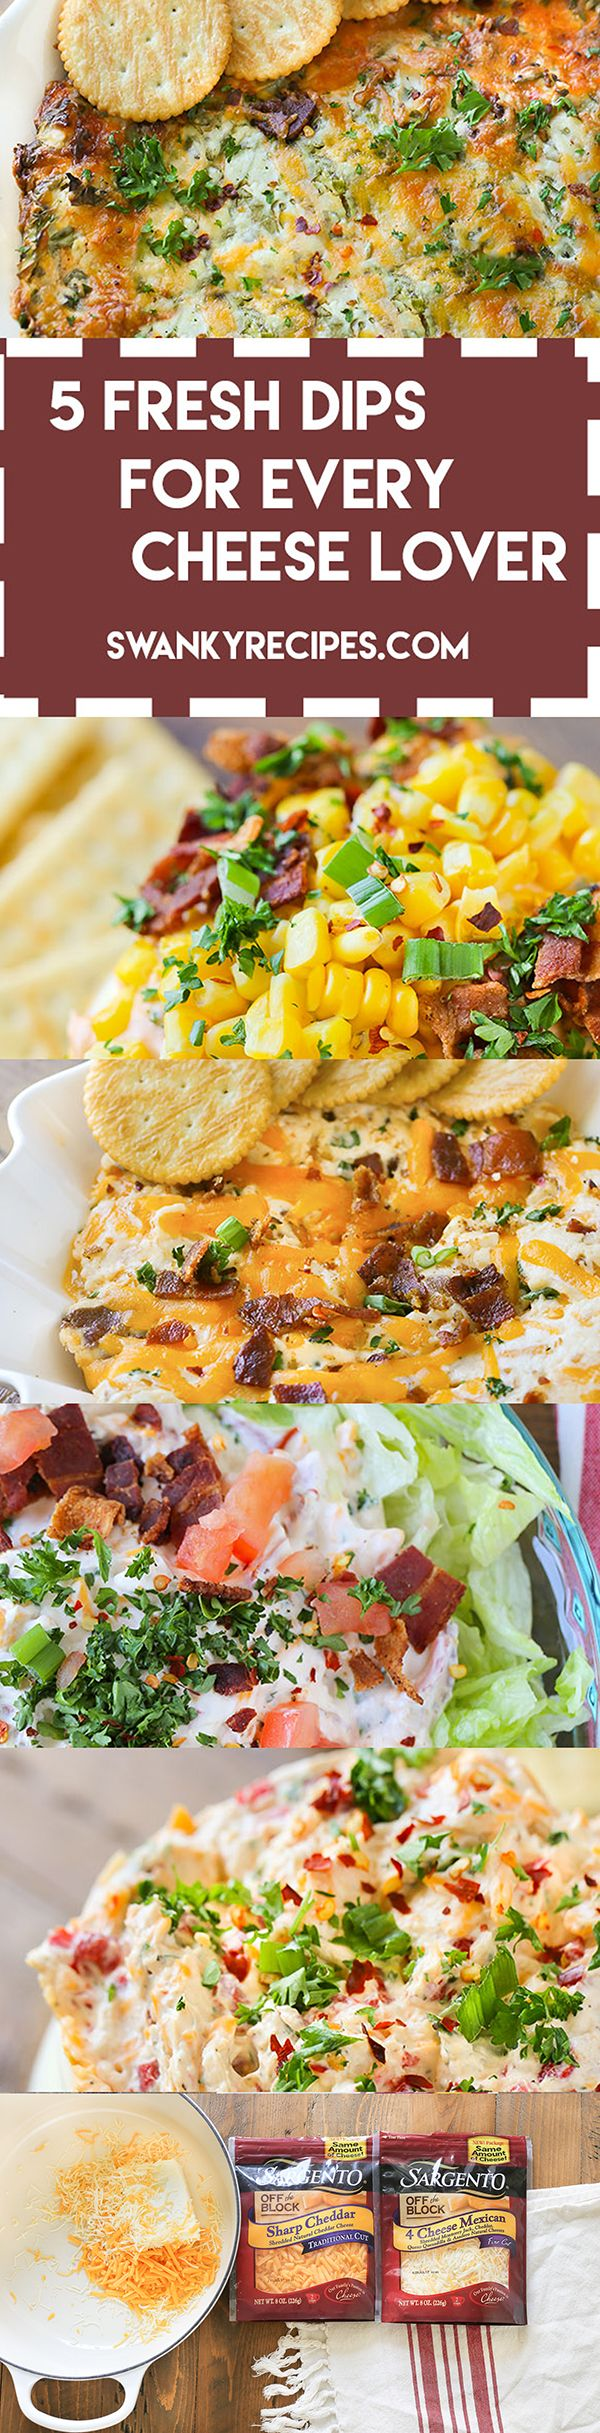 #ad Five Fresh Dip Recipes made with @sargentocheese.  Classics include Cheesy Spinach Dip and Pimento Cheese.  New favorites such as Charleston Cheese Dip and Bacon Corn Dip are a must try!  If you're a BLT lover, you'll want to try this dip with a new twist! #RealCheesePeople #IC